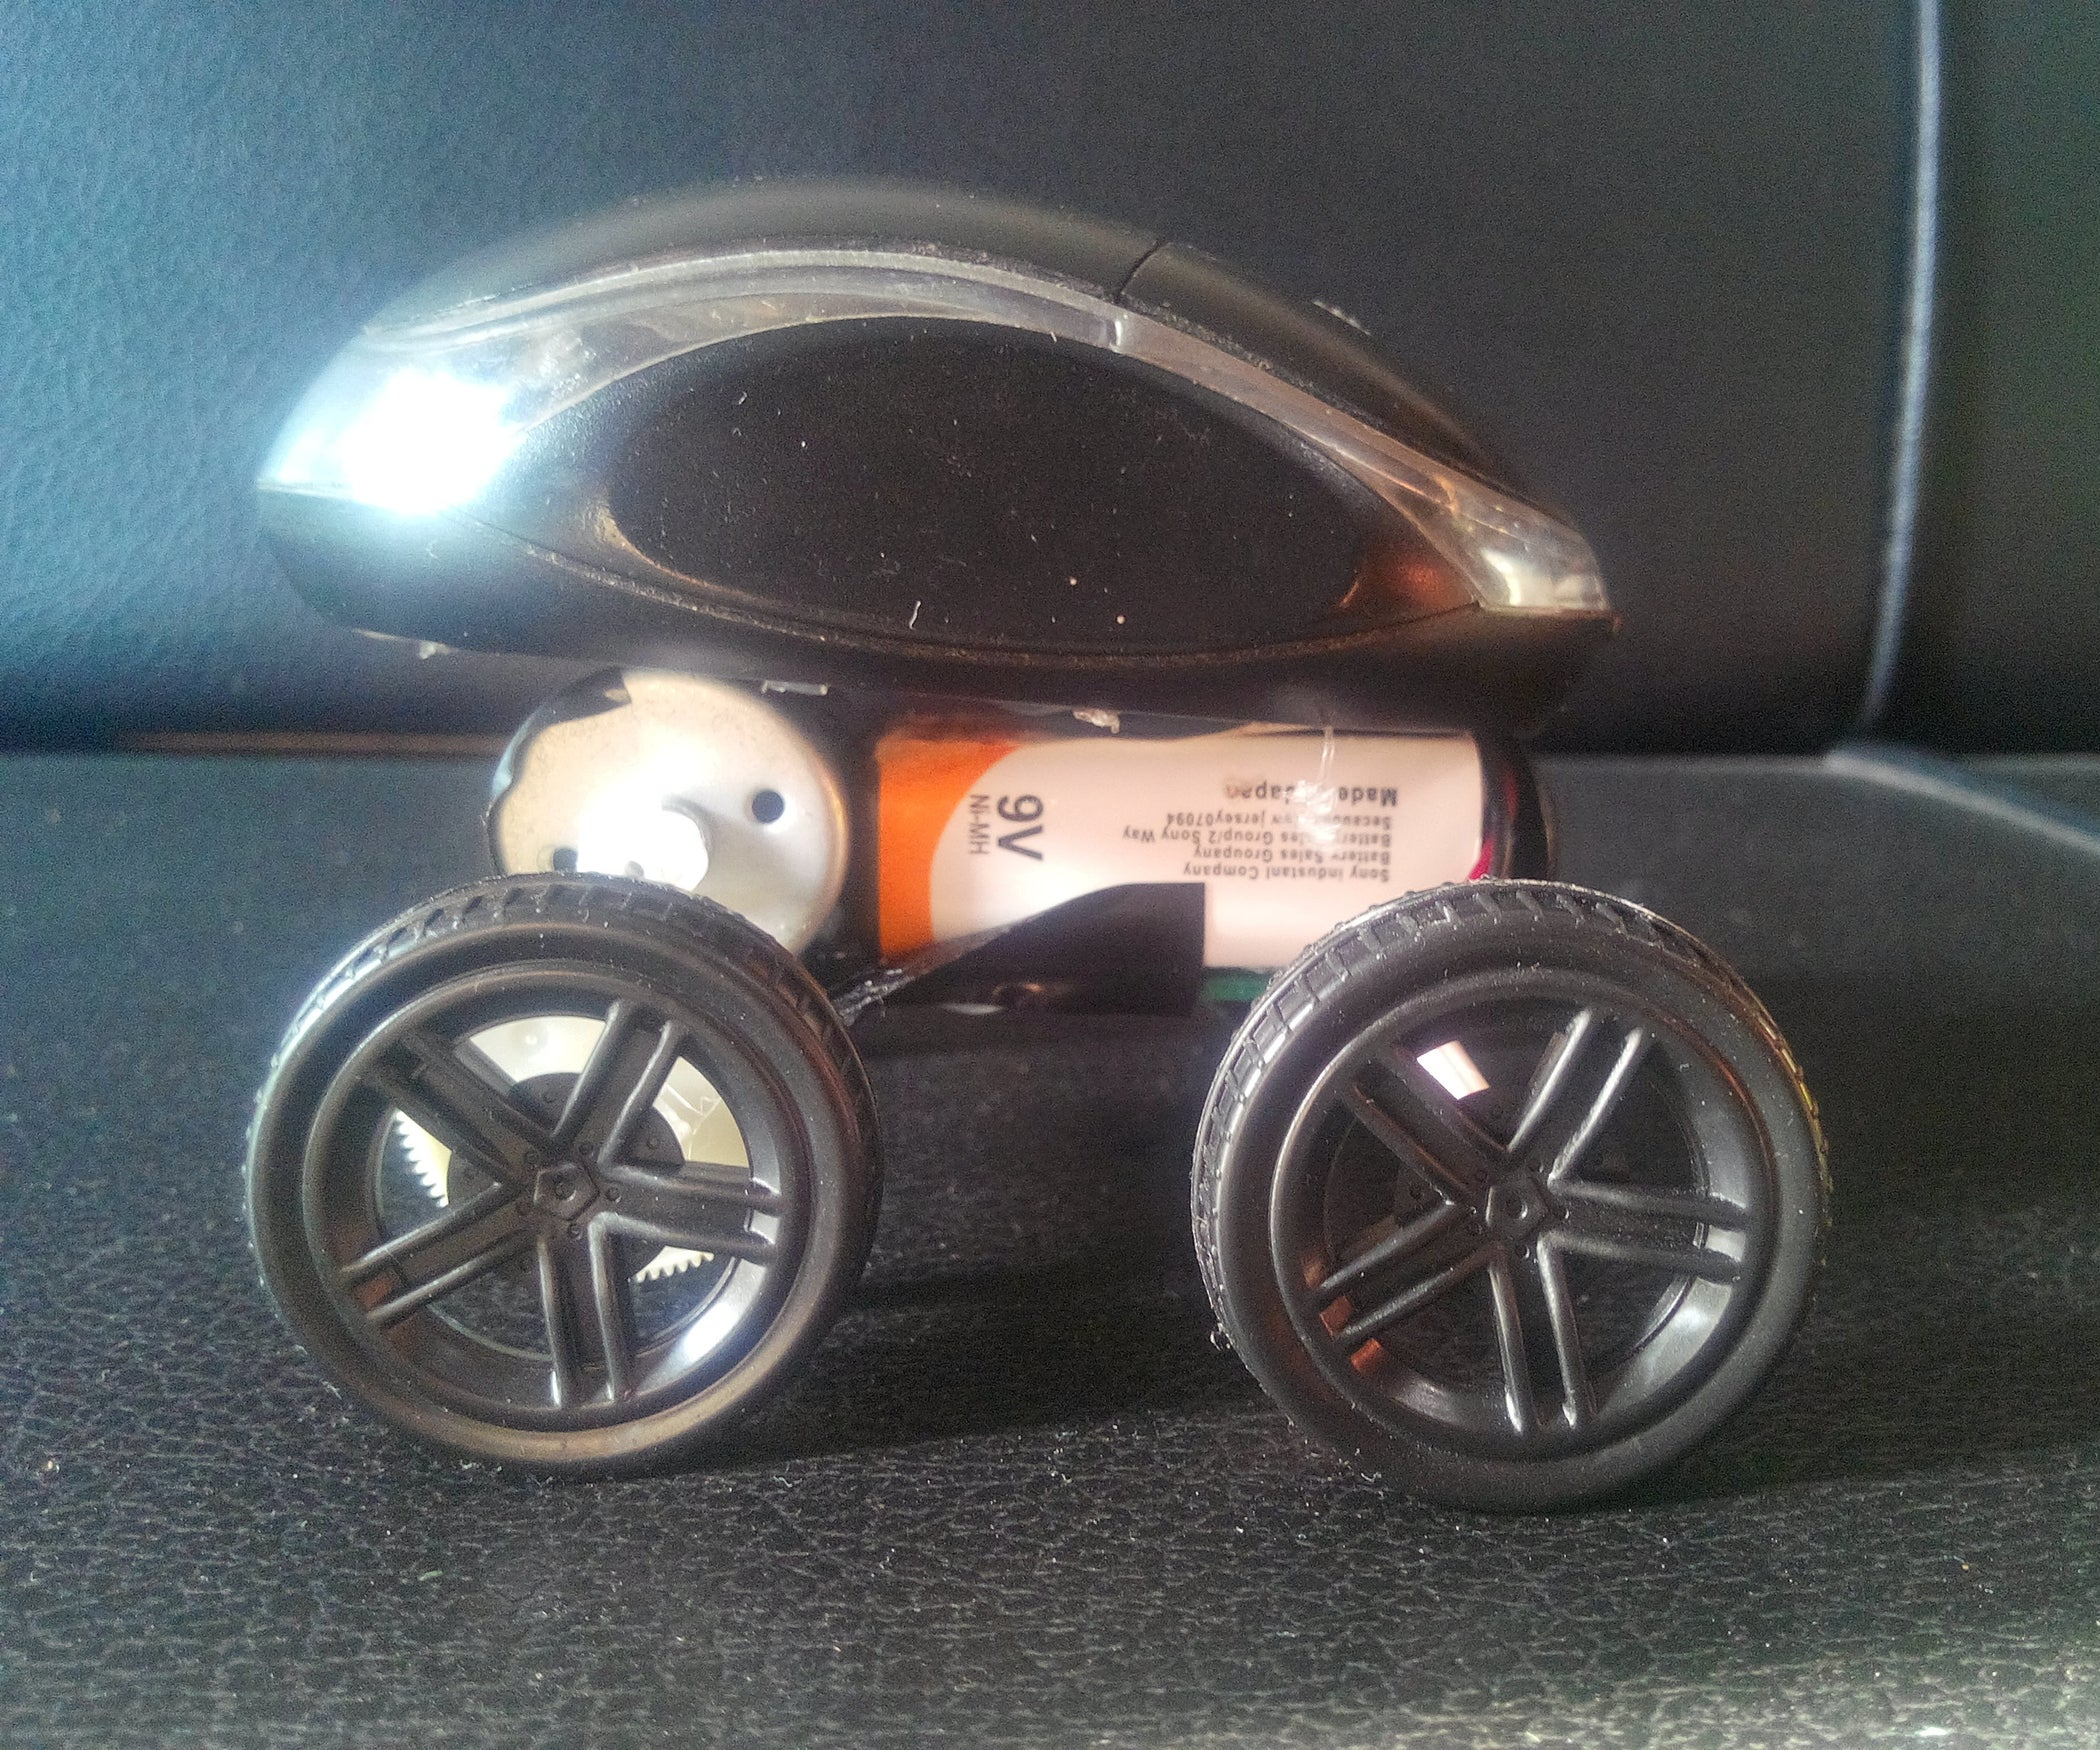 How To Make A Car With Mouse Powered Car Simple 11 Steps